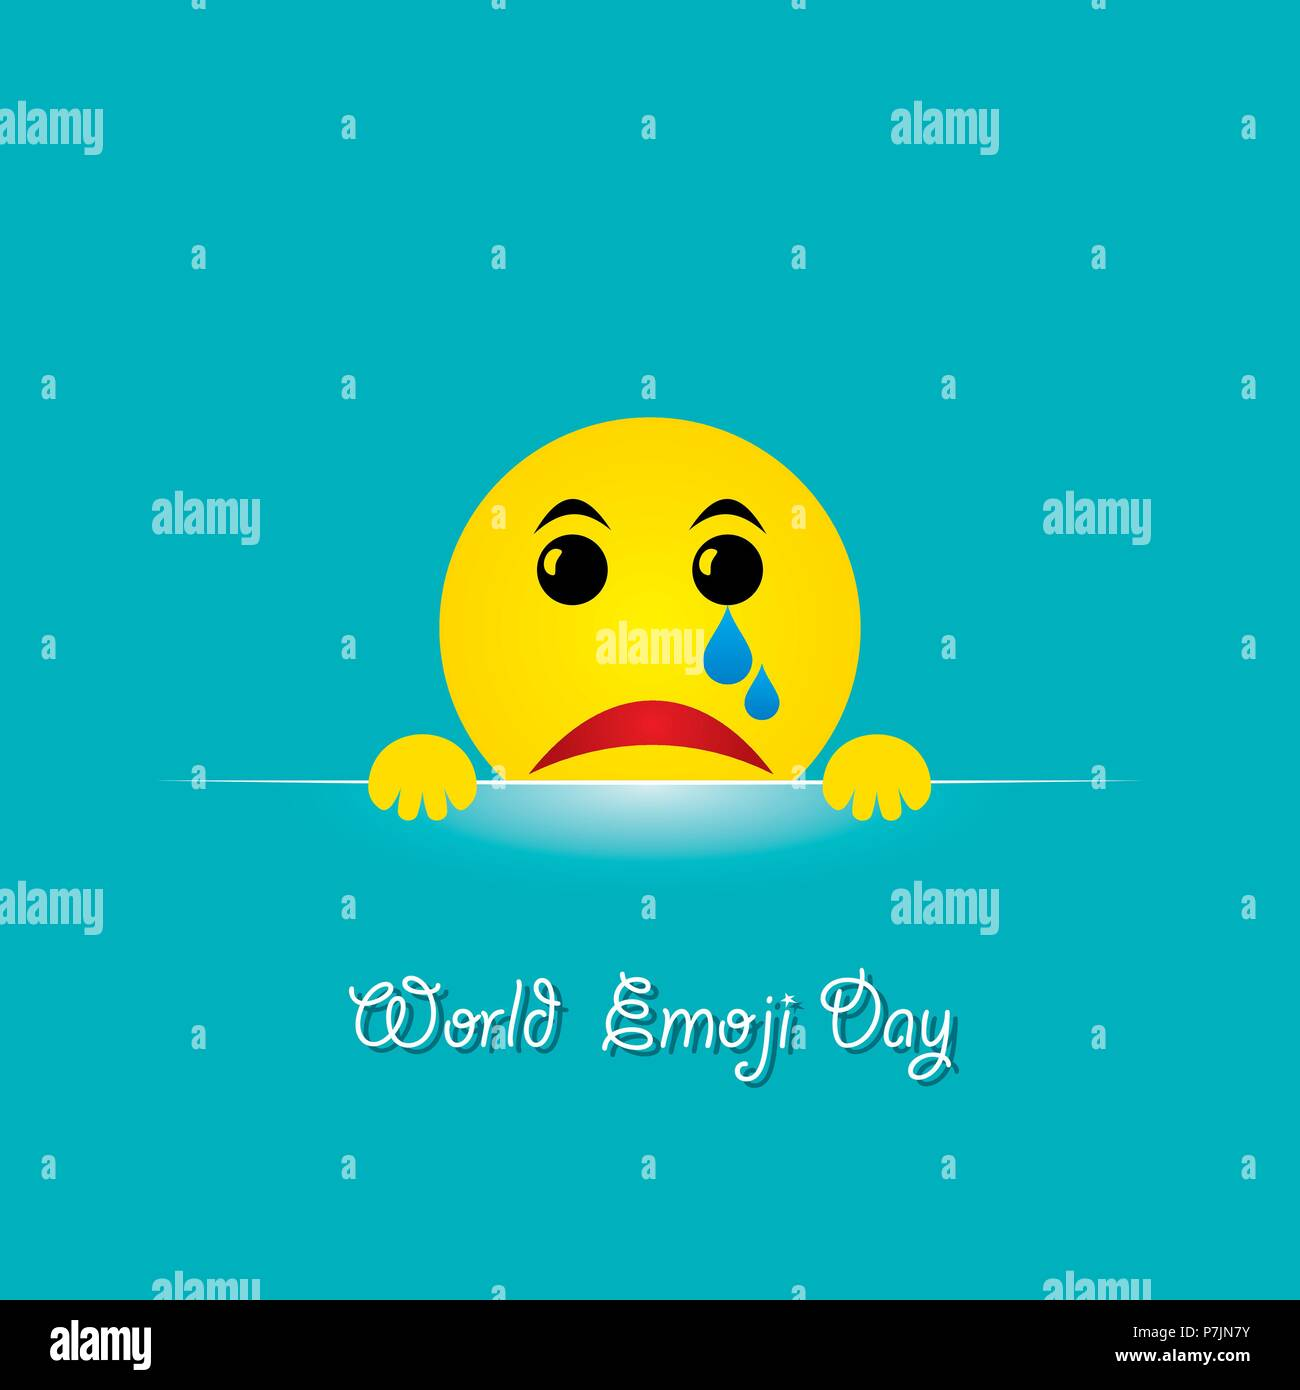 World emoji day greeting card design template with different feelings - Stock Image